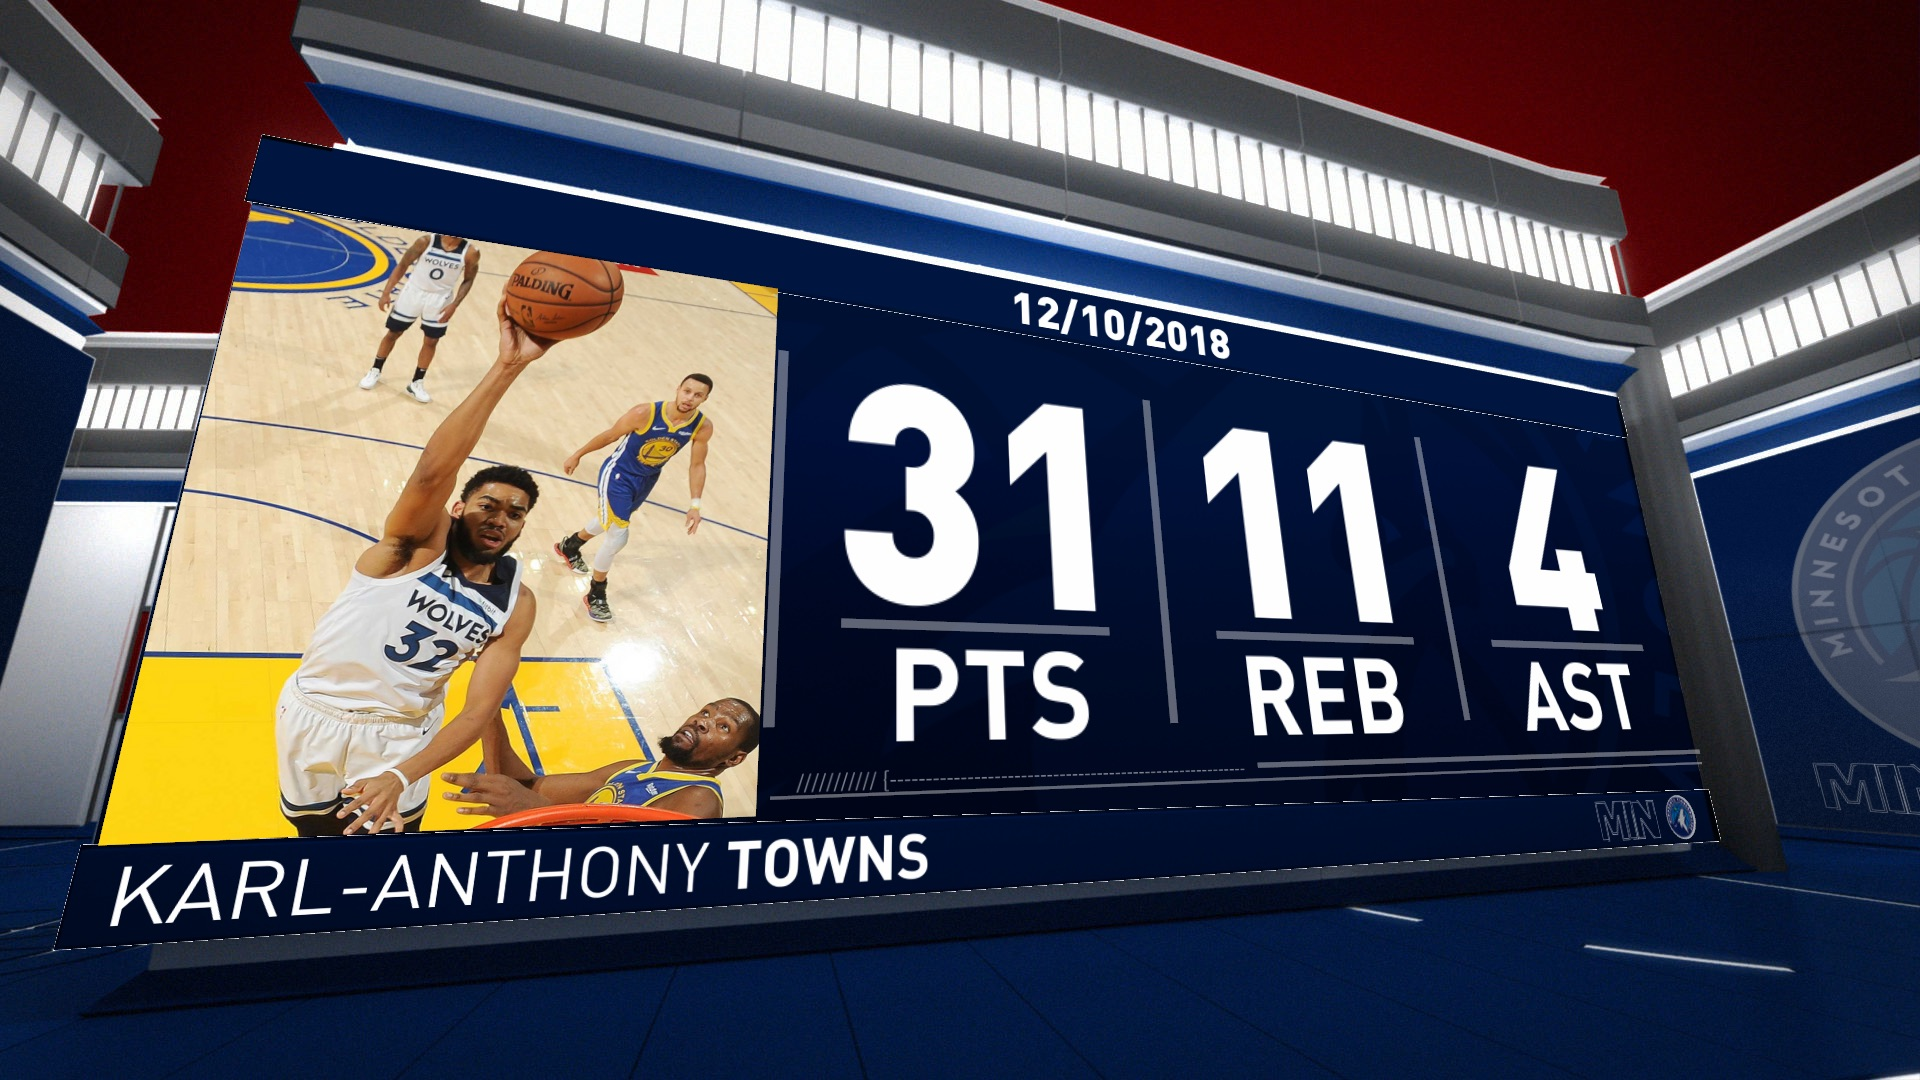 Karl-Anthony Towns (31 points) Highlights vs. Golden State Warriors